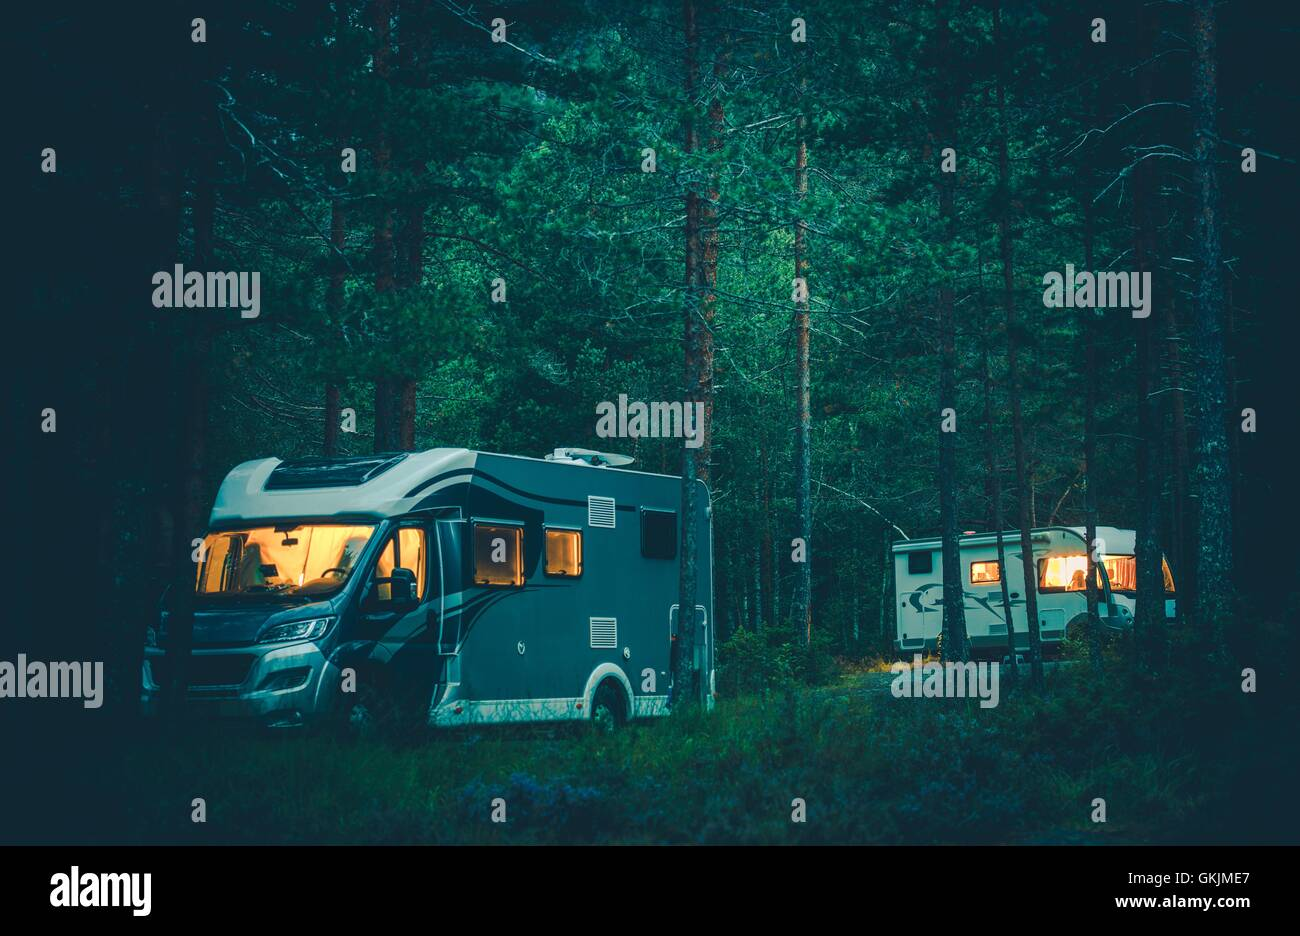 Camping in the woods at night Wild Camping Motorhomes Camping In Wild Rv Boondocking In The Forest At Night Traveling In The Camper Van Alamy Motorhomes Camping In Wild Rv Boondocking In The Forest At Night